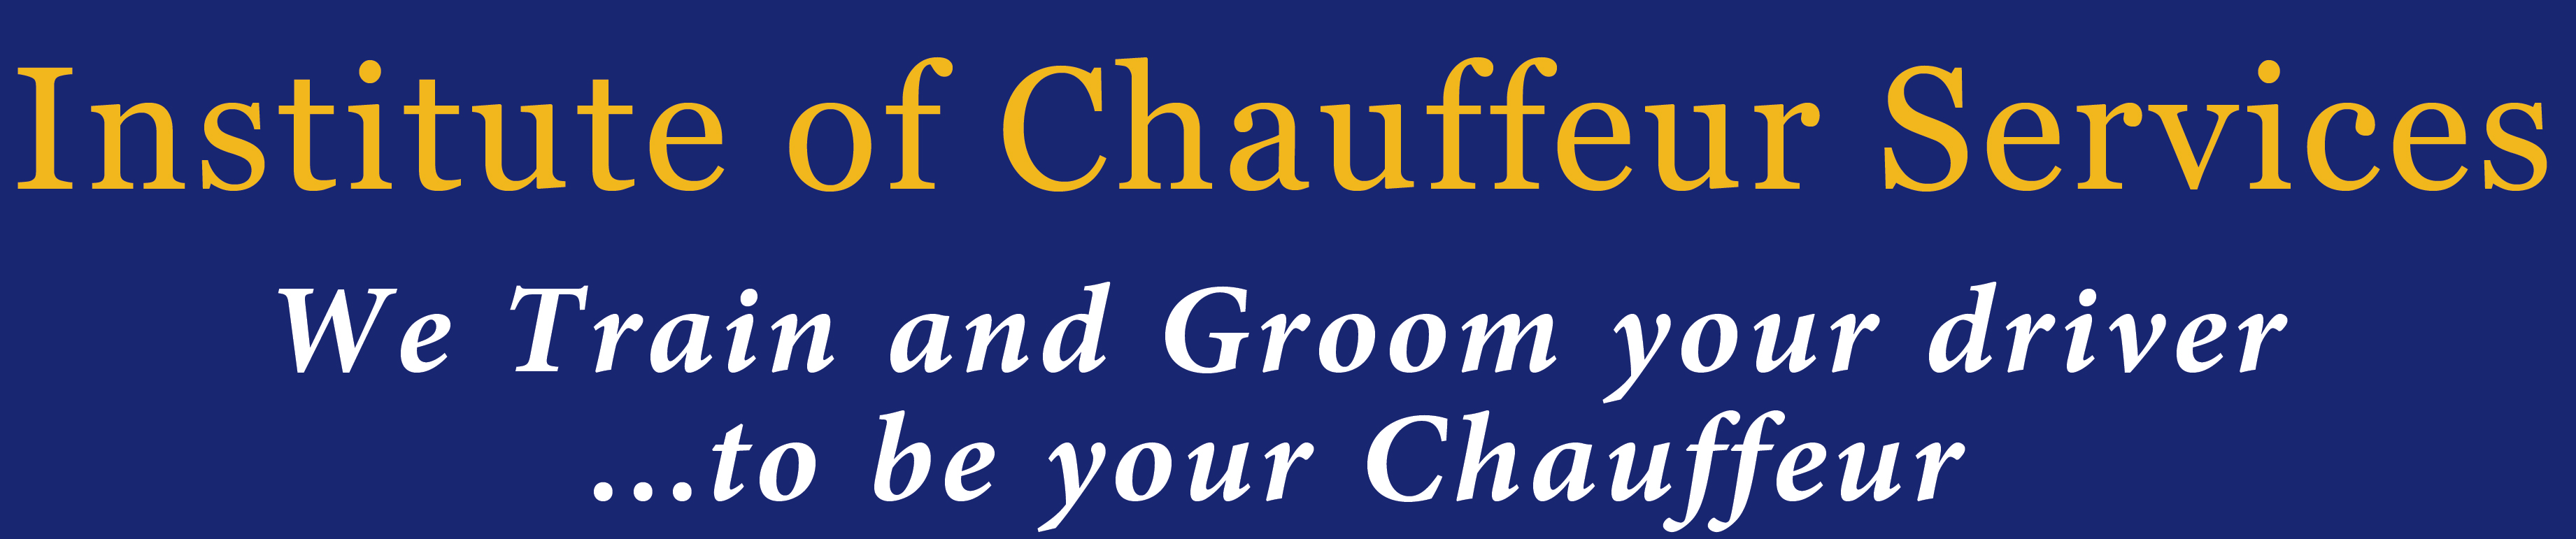 Welcome to Institute of Chauffeur Services || We Train and Groom your driver ... to be your Chauffeur